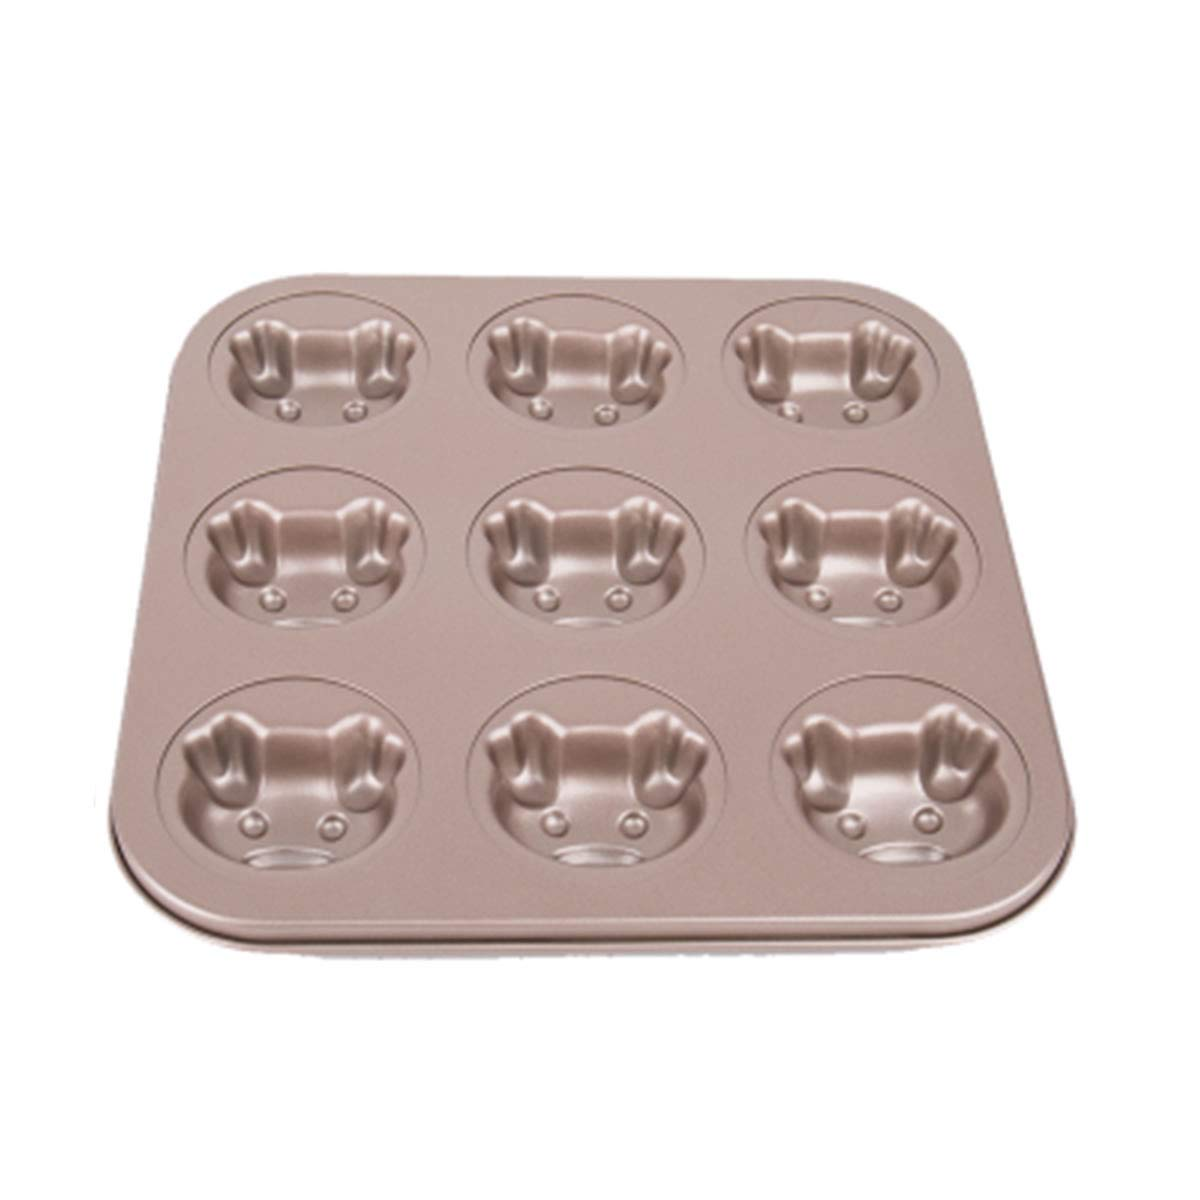 OBR KING Animal 9 Cavity Cake Mold with Nonstick Coating Carbon Steel Cake Baking Tools (Pig)